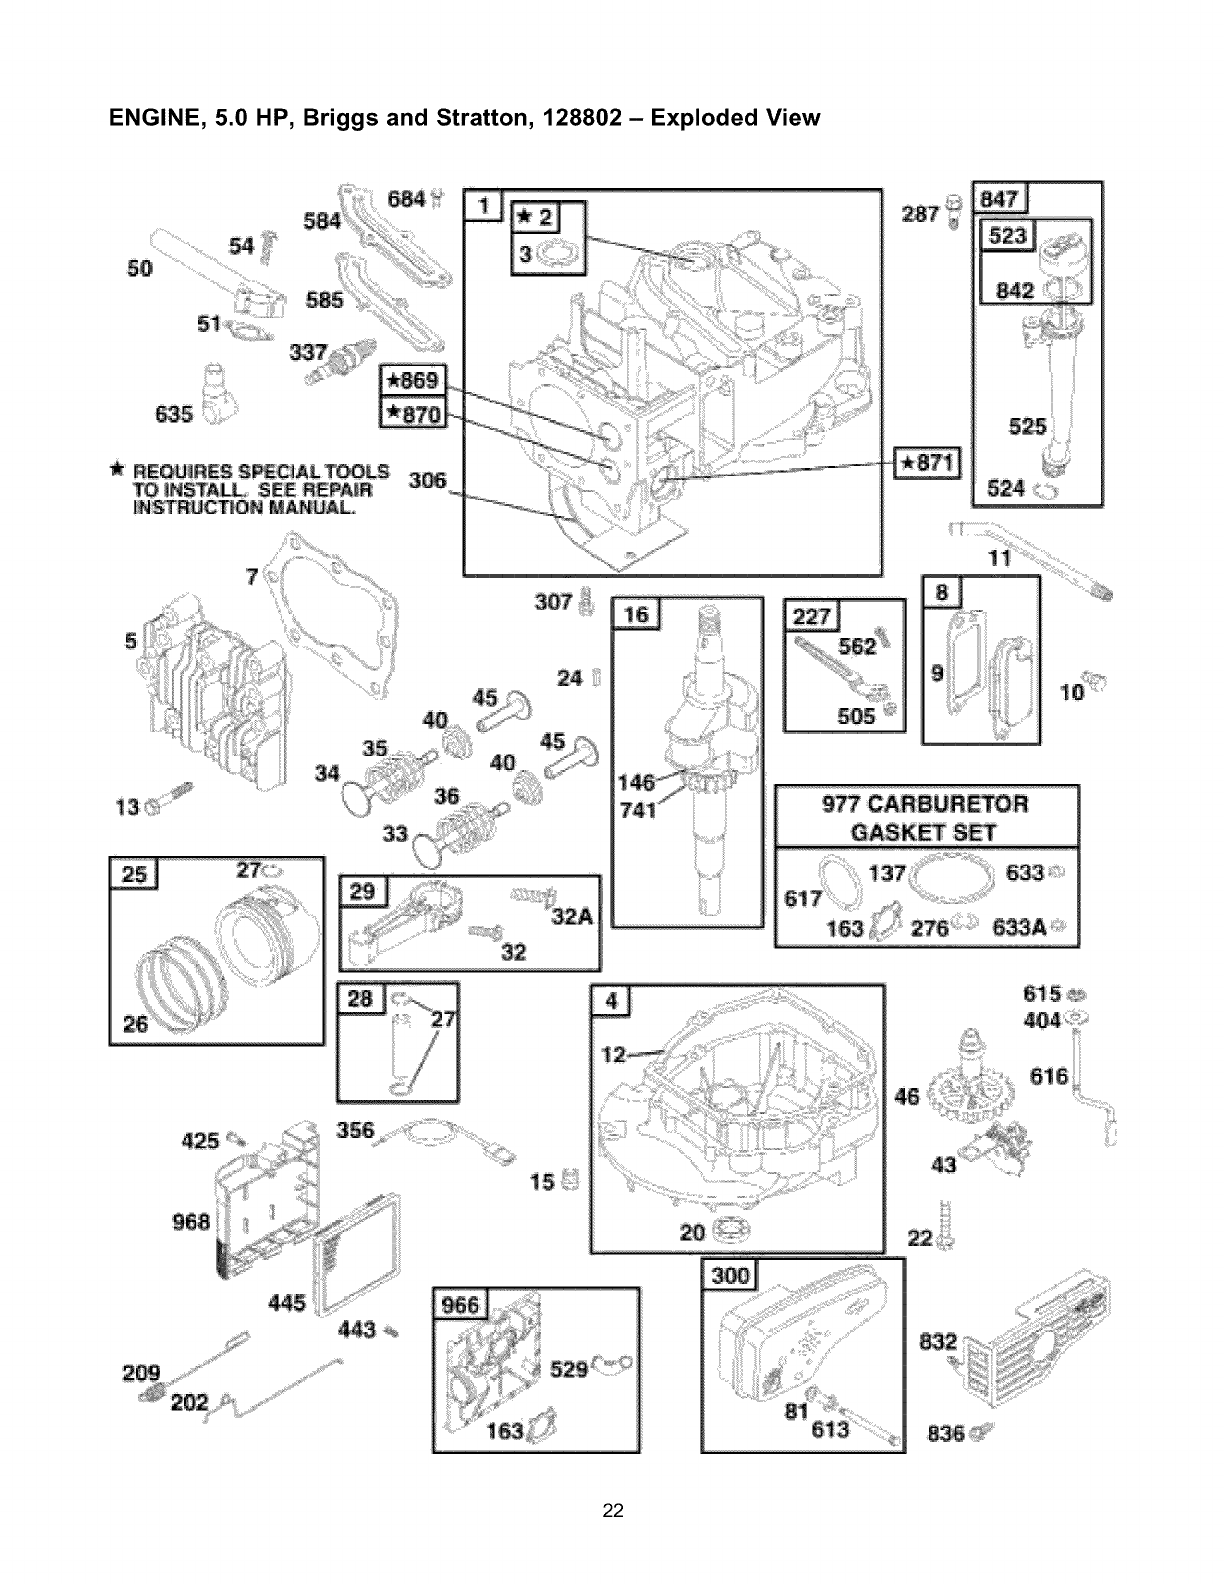 Craftsman 580767101 User Manual Pressure Washer Manuals And Guides Briggs Stratton Engine Model 128802 50 Hp Exploded View